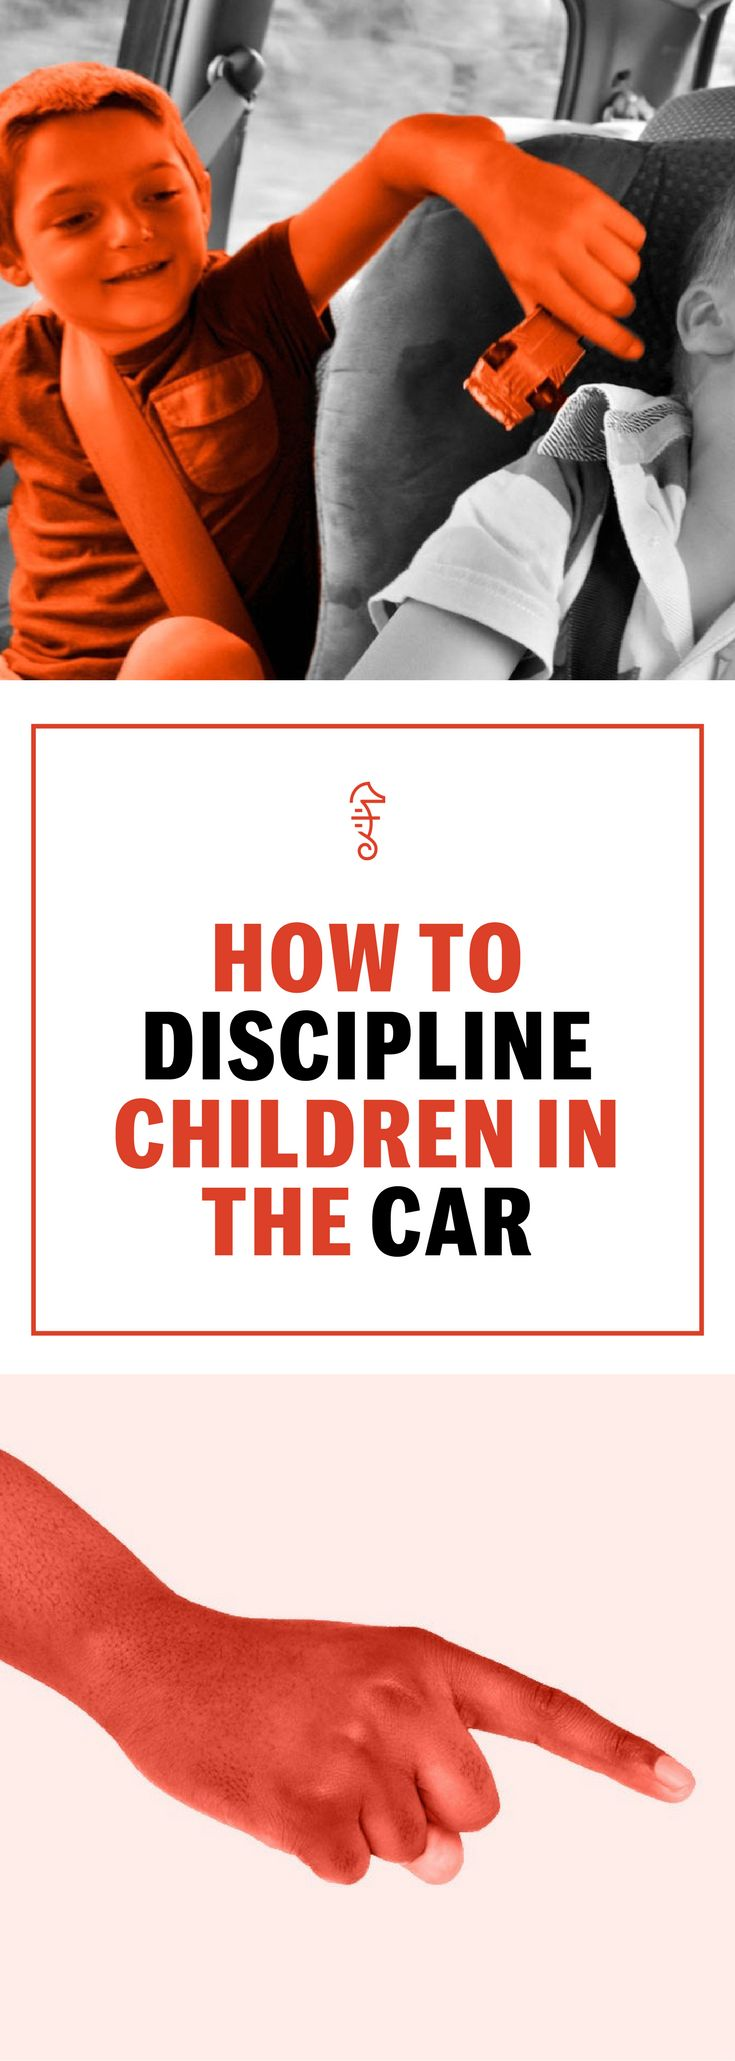 disciplining toddlers, discipline that connects, discipline tips disciplining toddlers who hit, misbehaving toddler, traveling with kids, traveling with kids in car, traveling with kids in car toddlers